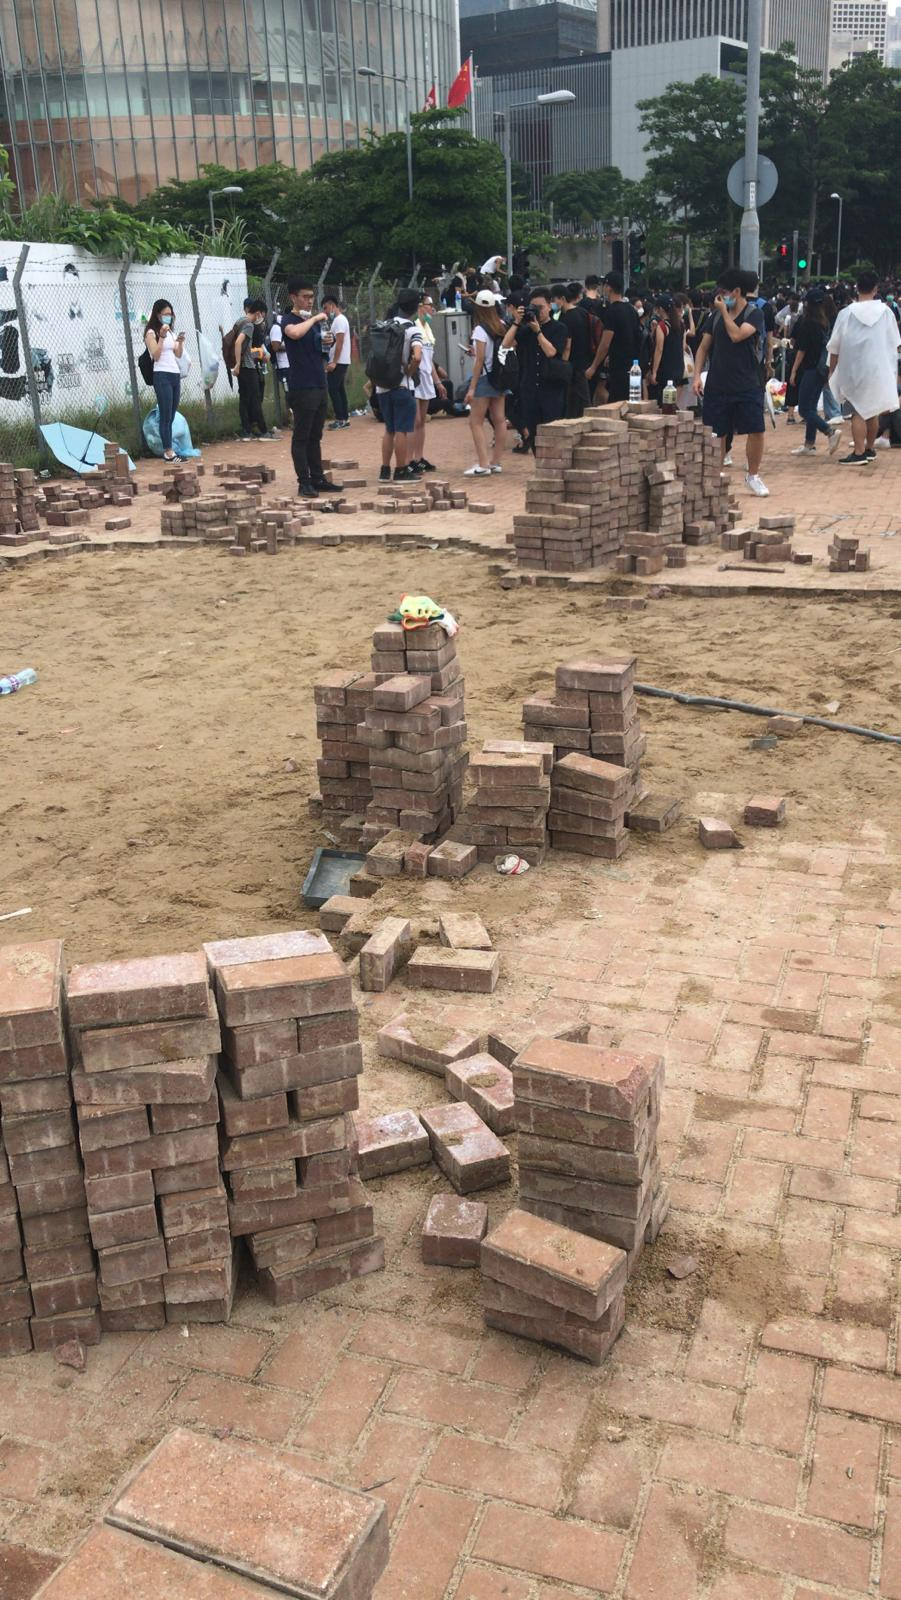 Hong Kong protesters dig up bricks from the pavements.